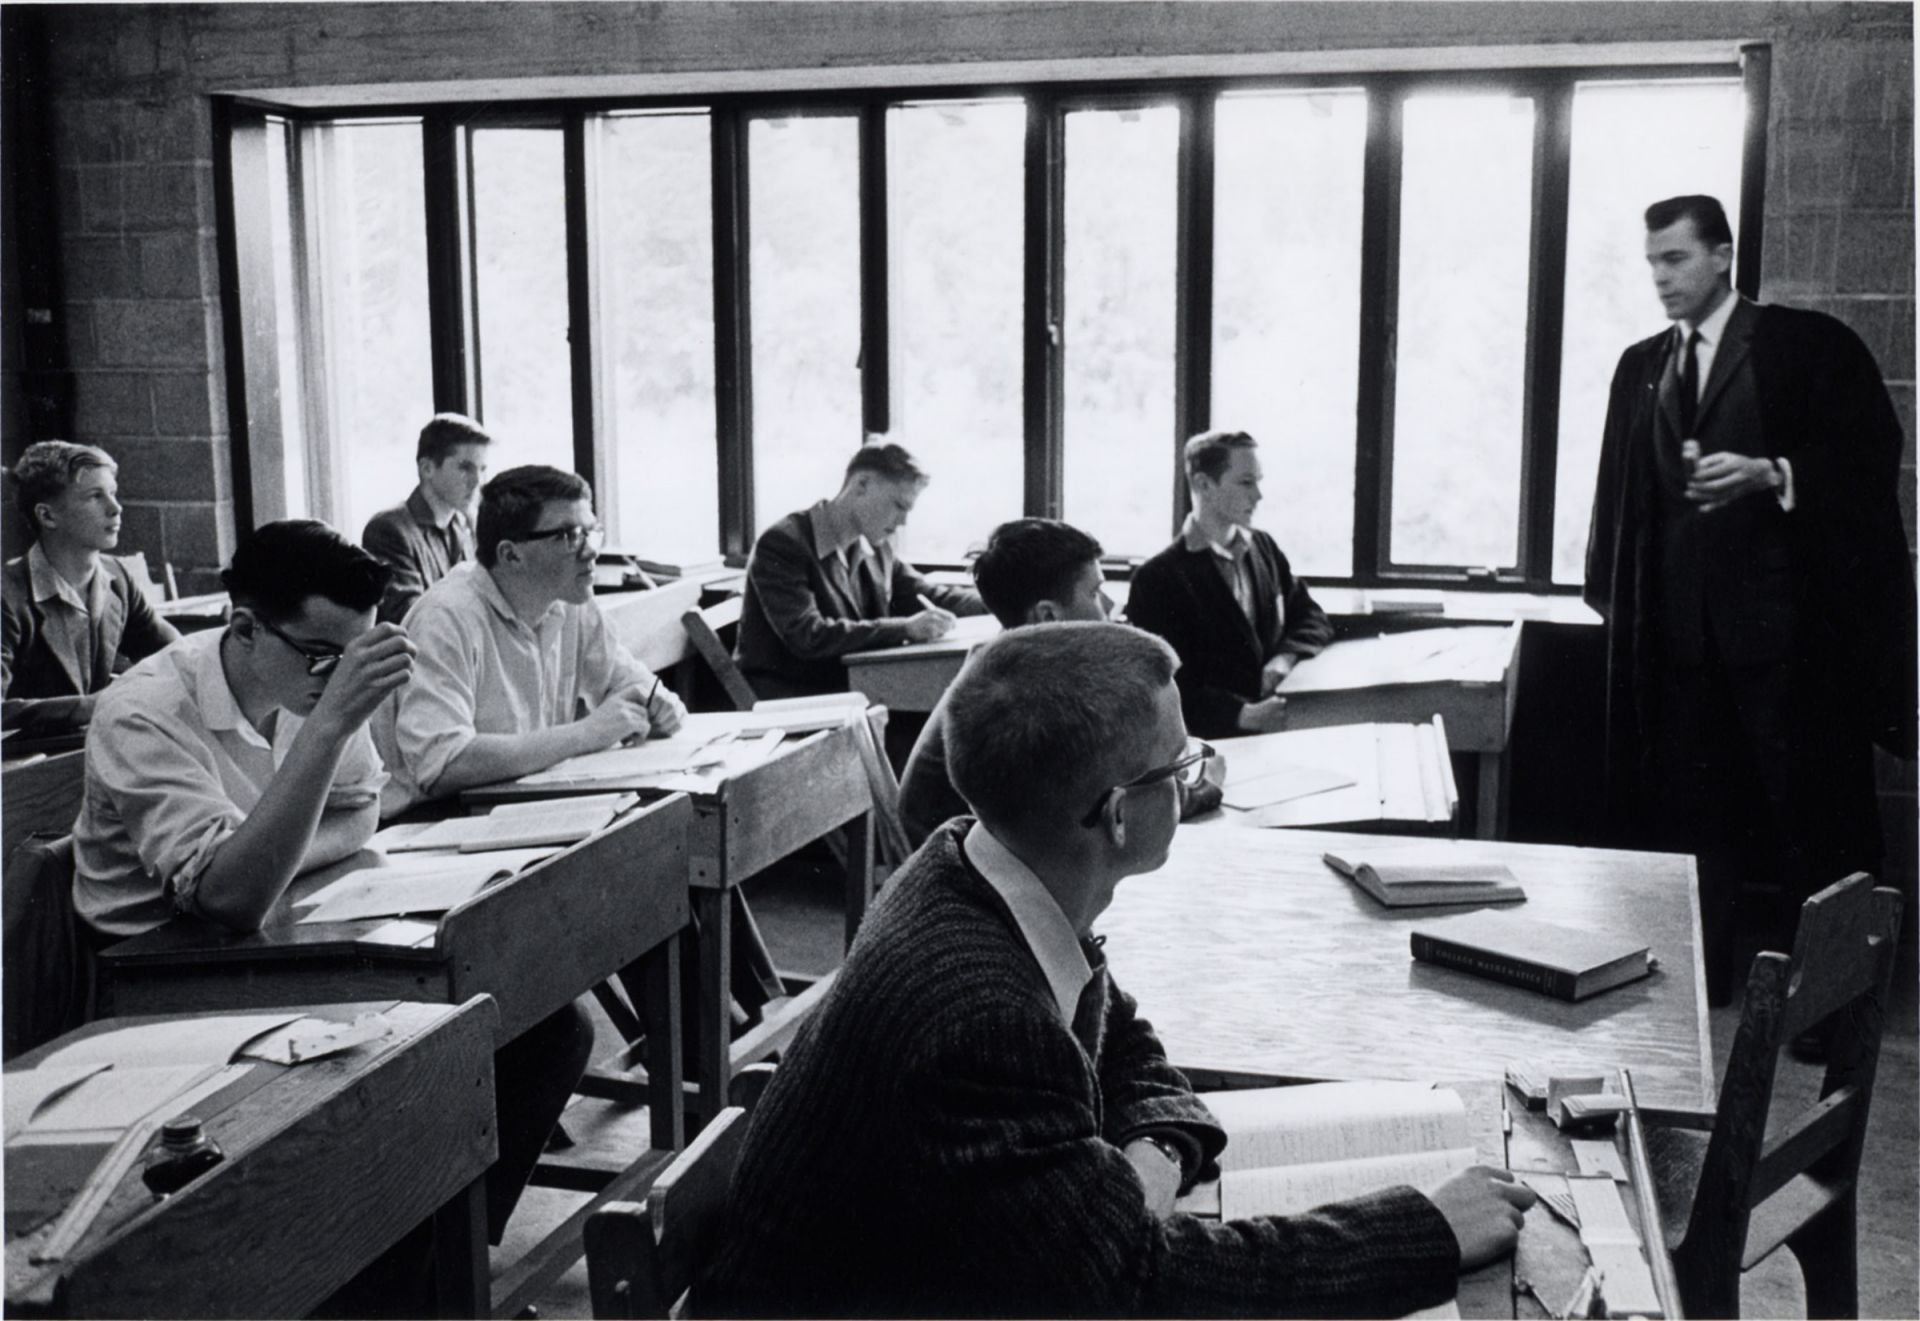 Headmaster E.R. (Ned) Larsen teaching, 1960